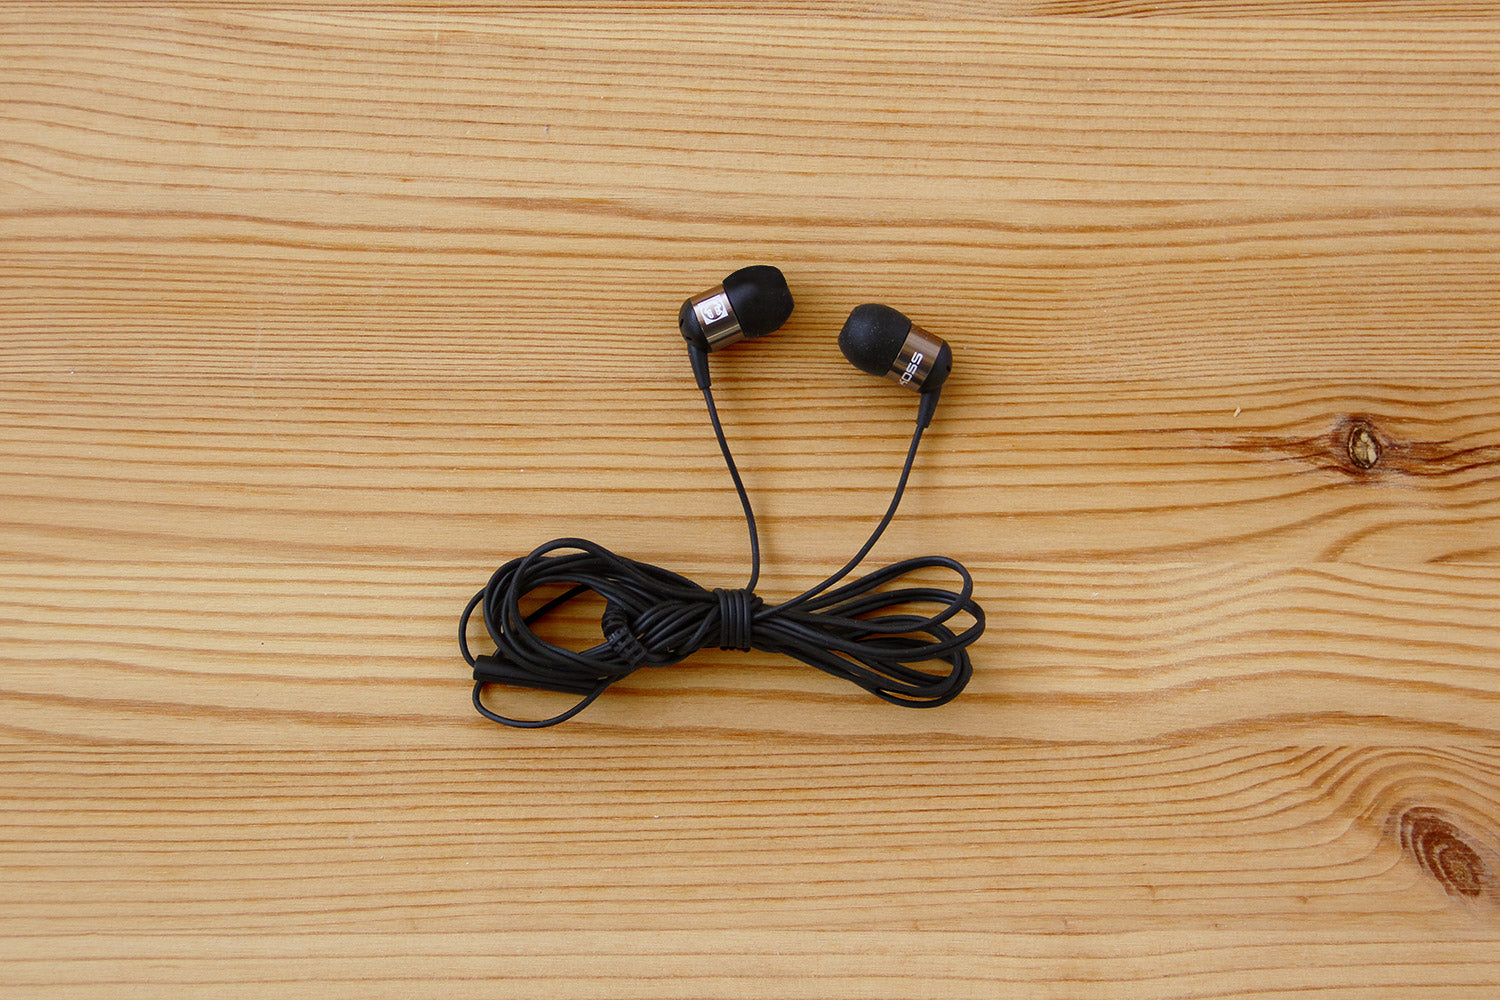 Koss Travel Tips | Bring along a pair of KEB25i in-ear headphones. They are super compact so they take up virtually no space in your bag